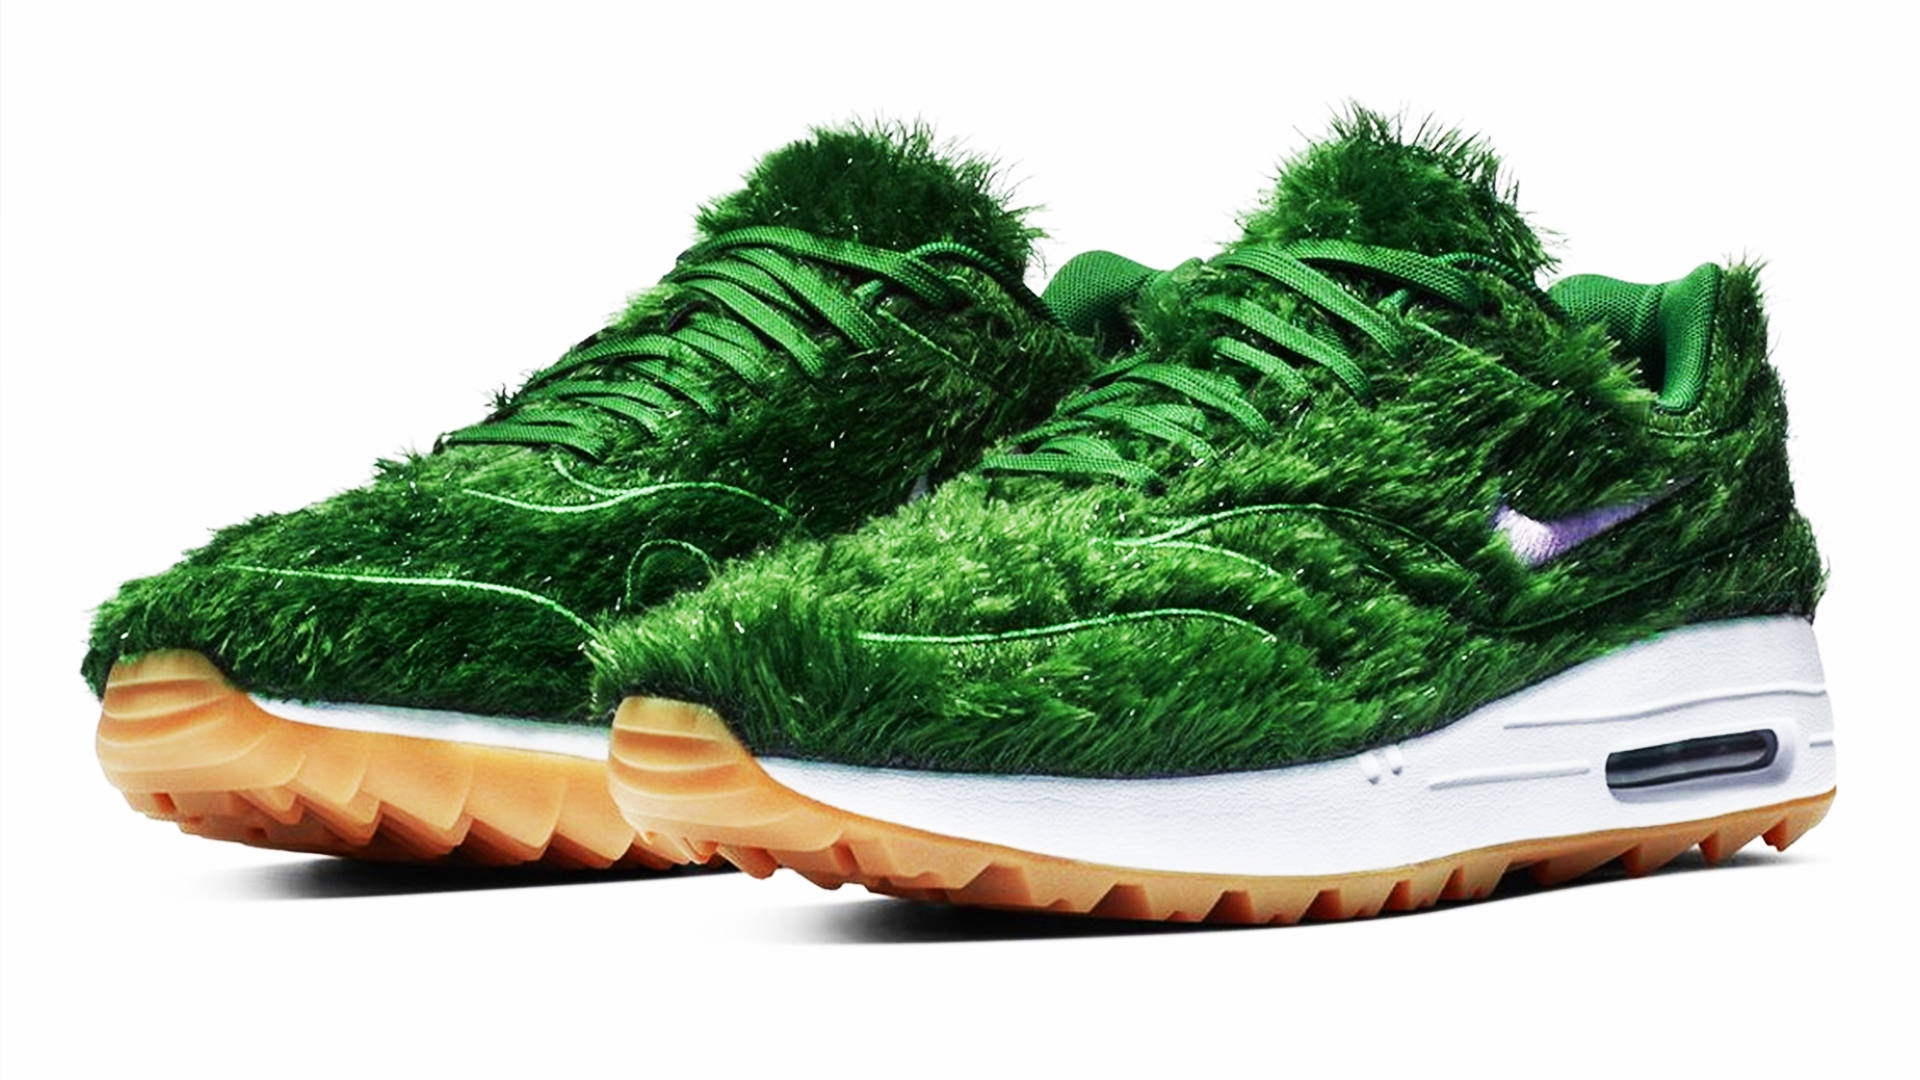 Nike S Grass Sneaker Will Make Your Swing Look Cool